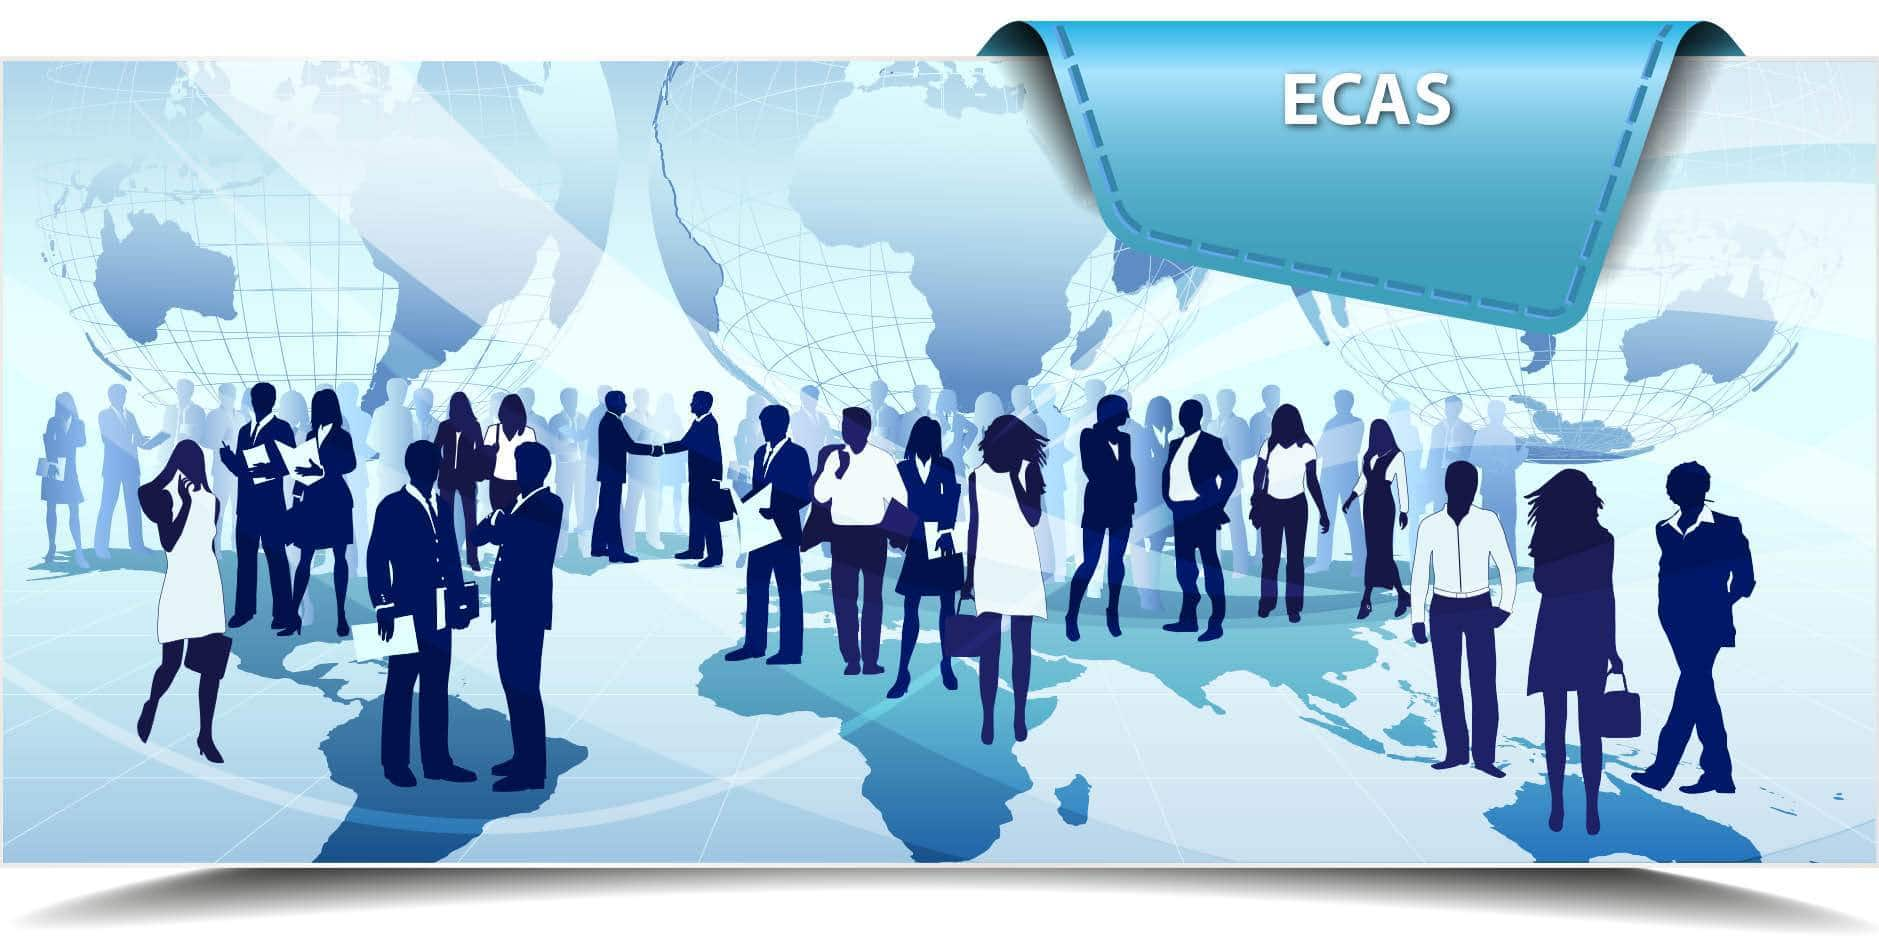 ECAS June News Flash – State Of The Union Citizens Rights 2019 | Civil Society Days 2019 | Empowering A New Generation Of EU Citizens | Populism Beyond The Popular Narratives | #myEUstory